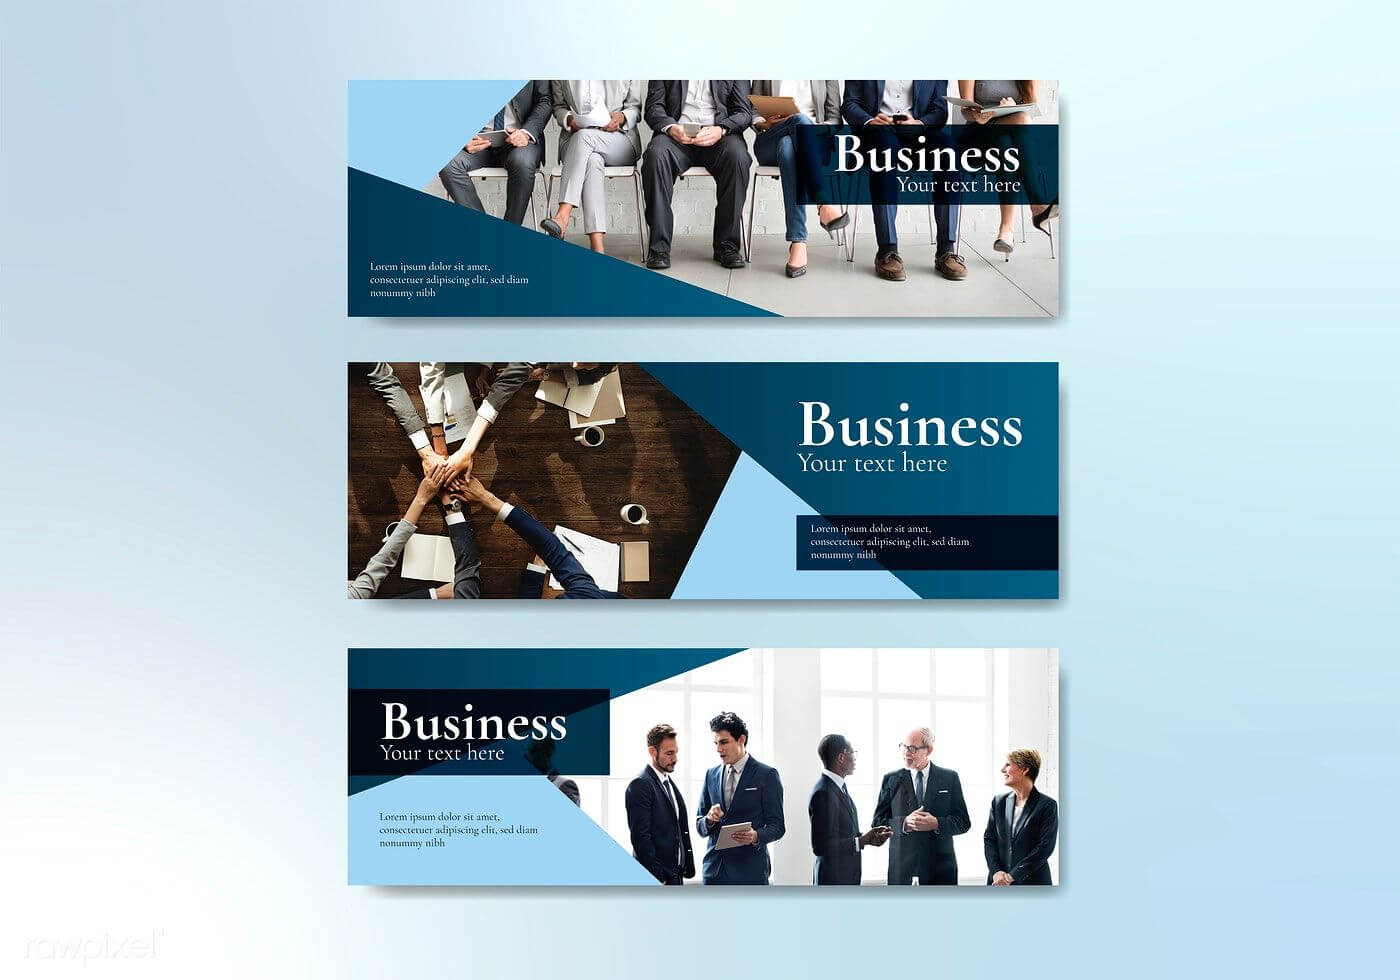 Business Website Banner Design Vector   Free Image With Photography Banner Template